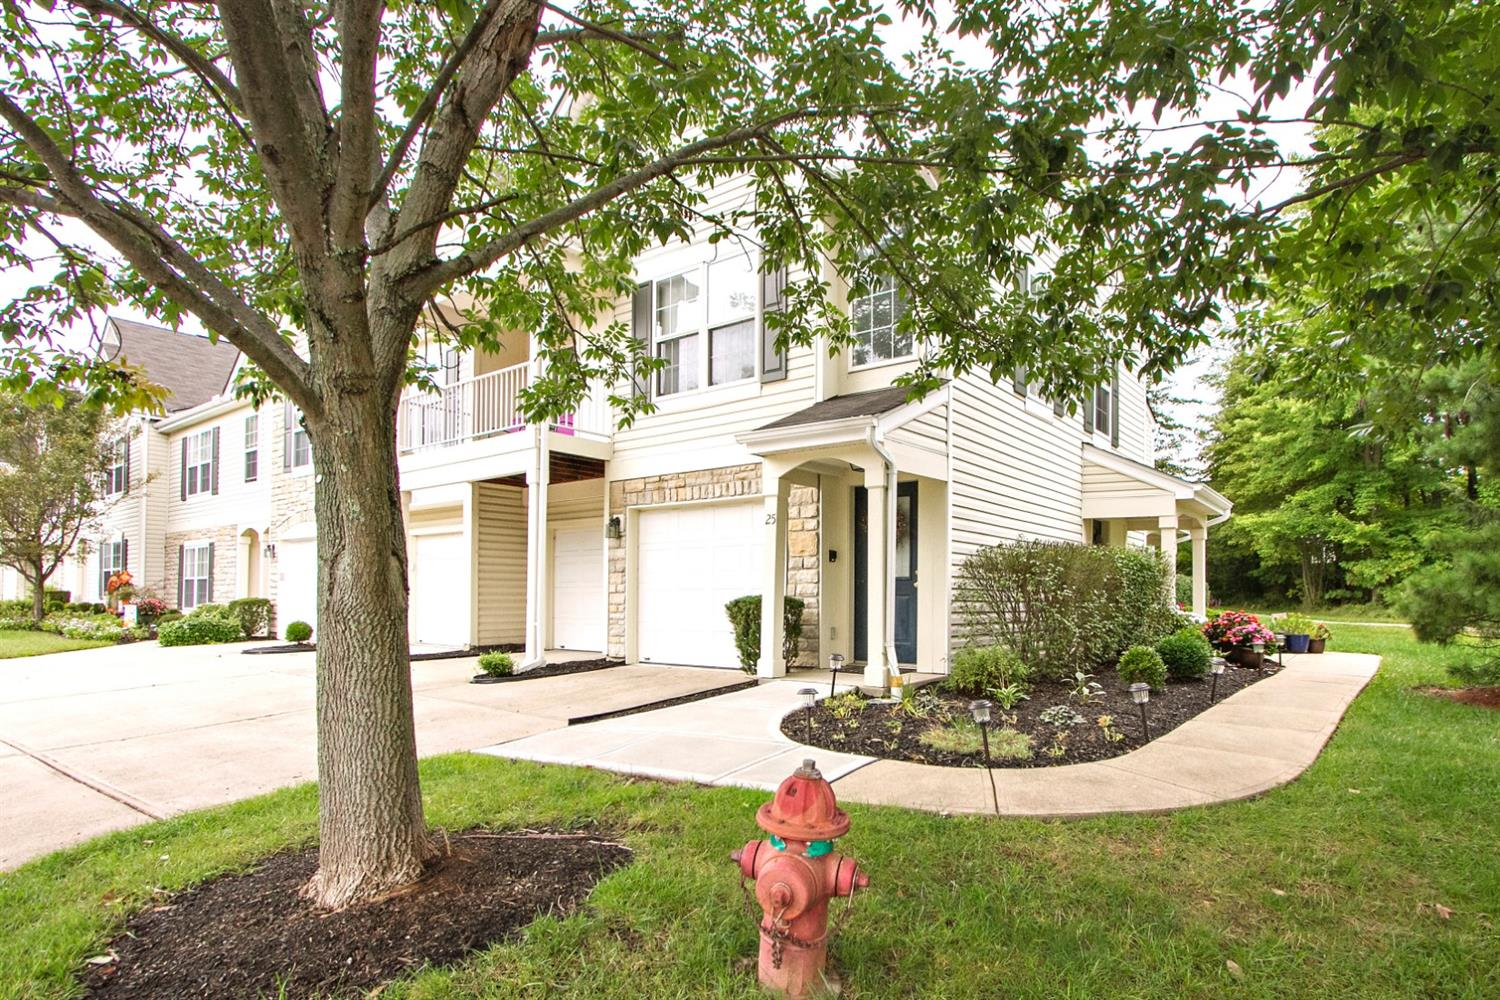 23 Tall Trees Dr Amelia, OH